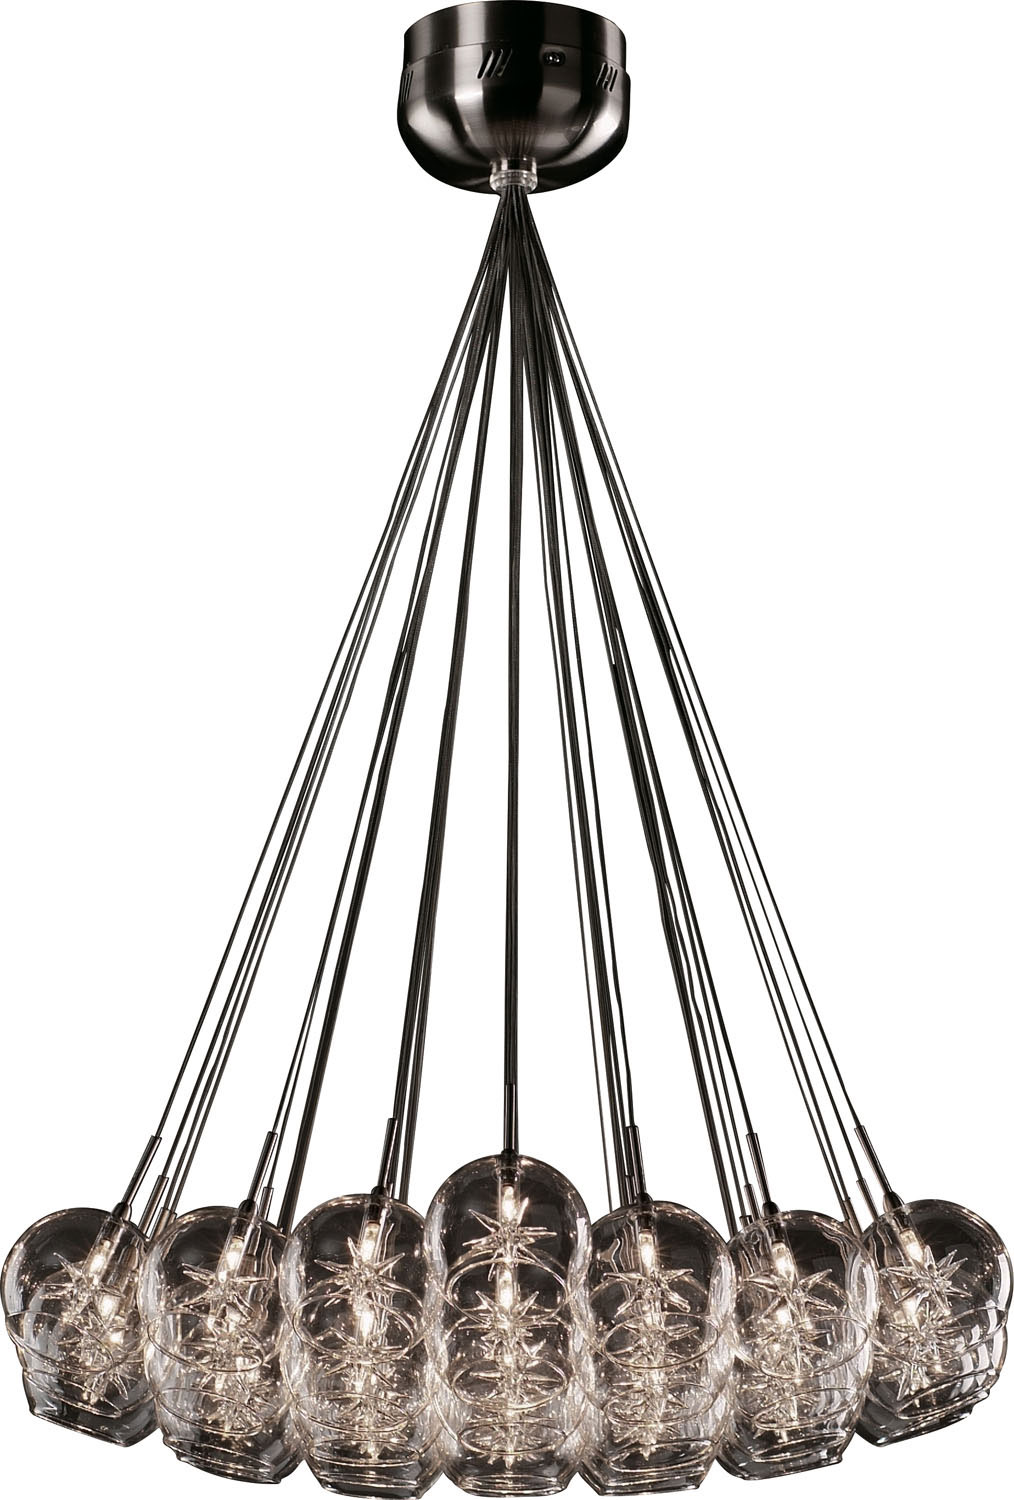 37 Light Pendant from the Starburst collection by ET2 E20112 24